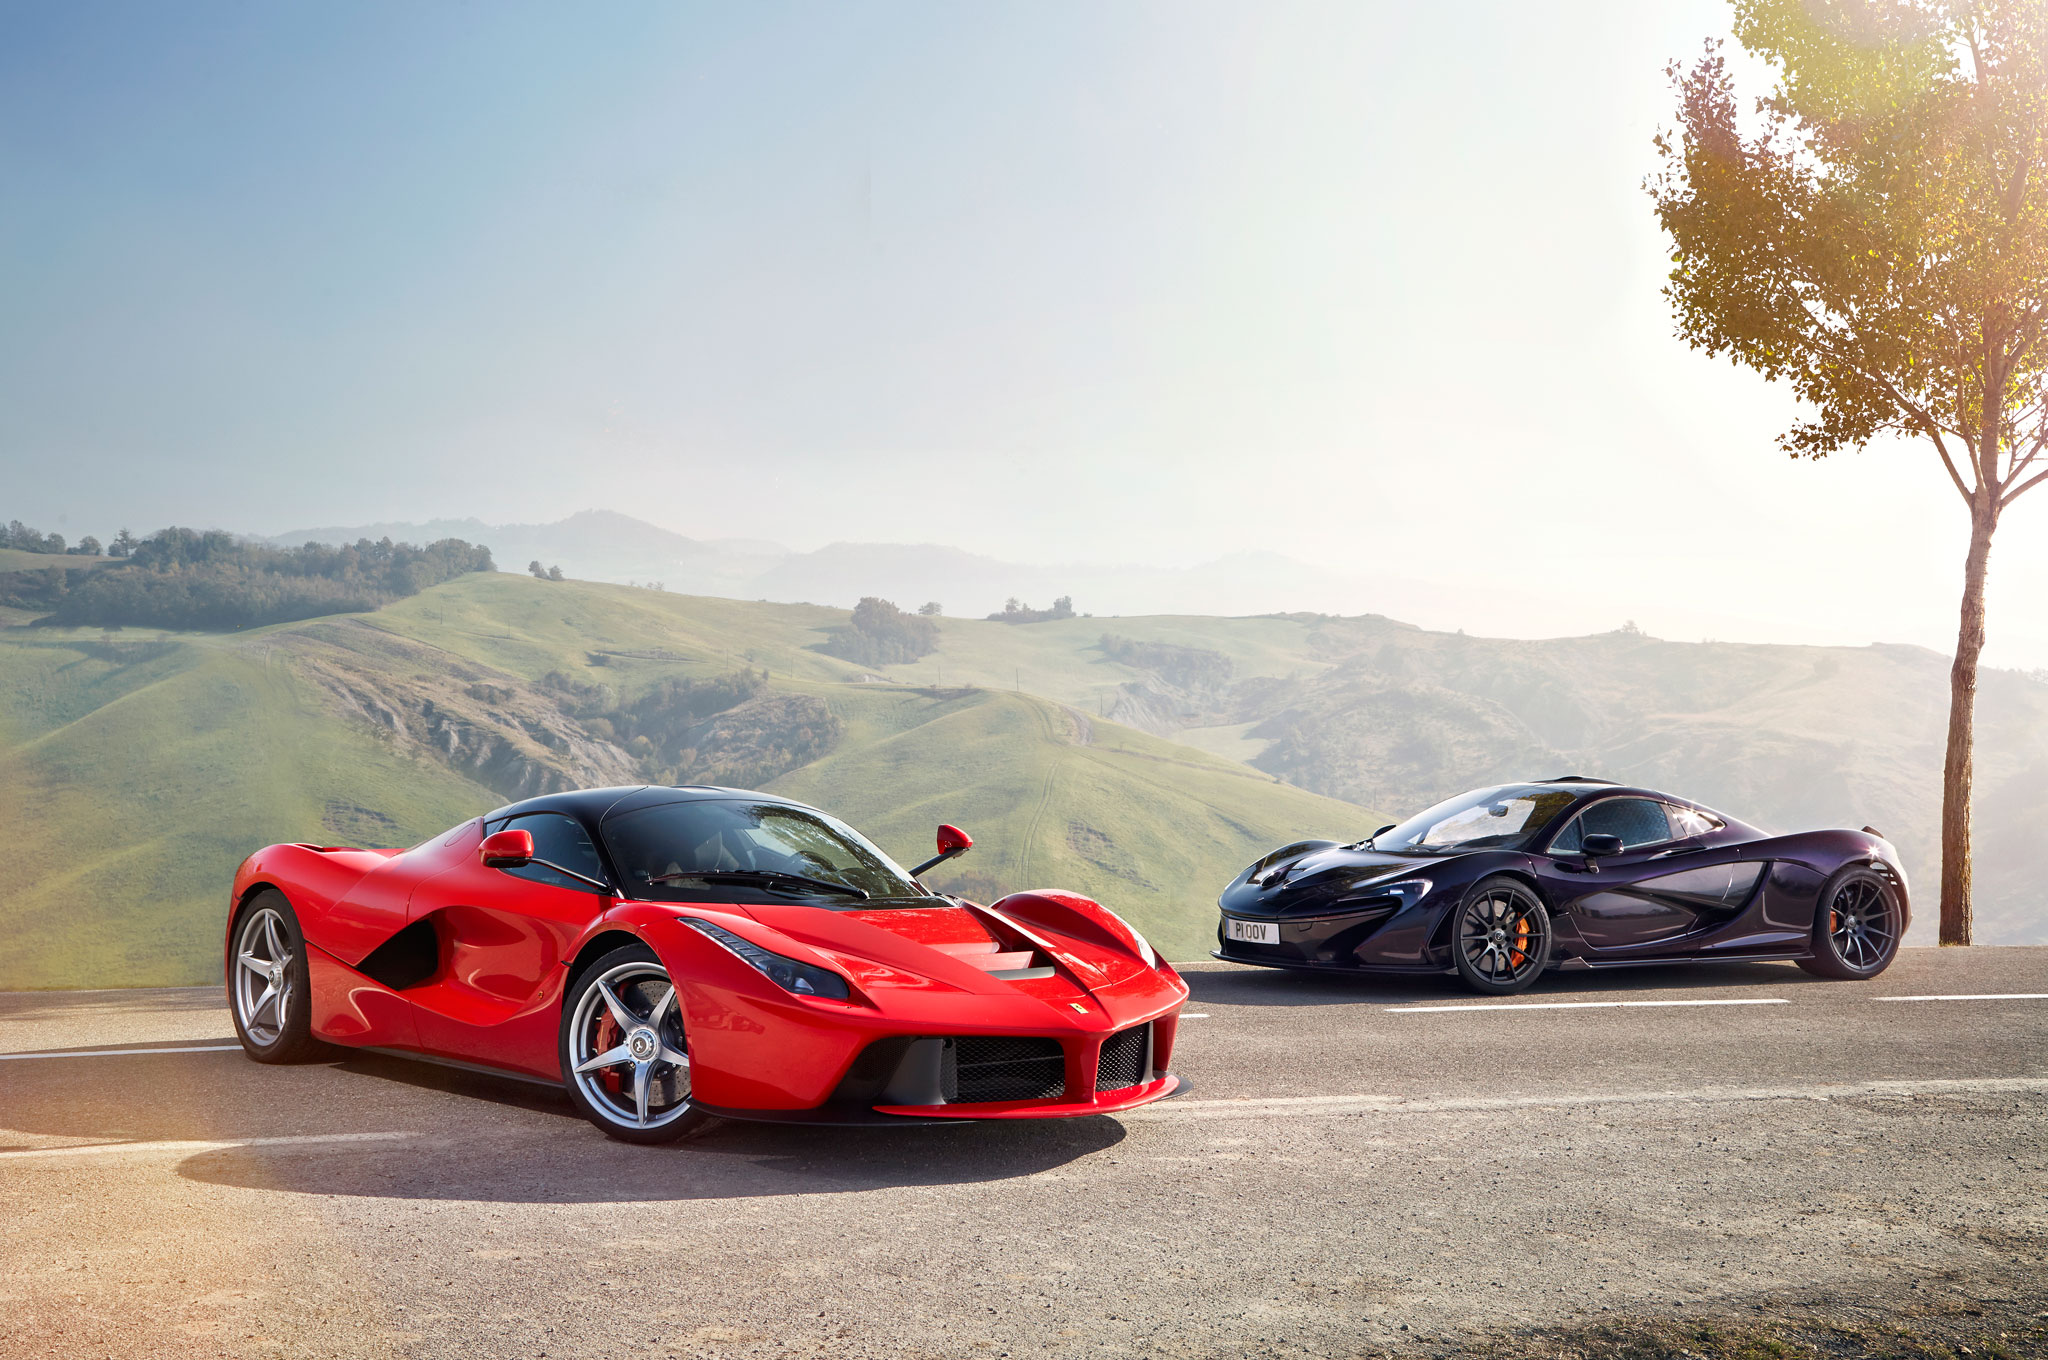 Mercedes Car Wallpapers For Windows 7 Hybrid Is The New Fast Ferrari Laferrari Vs Mclaren P1